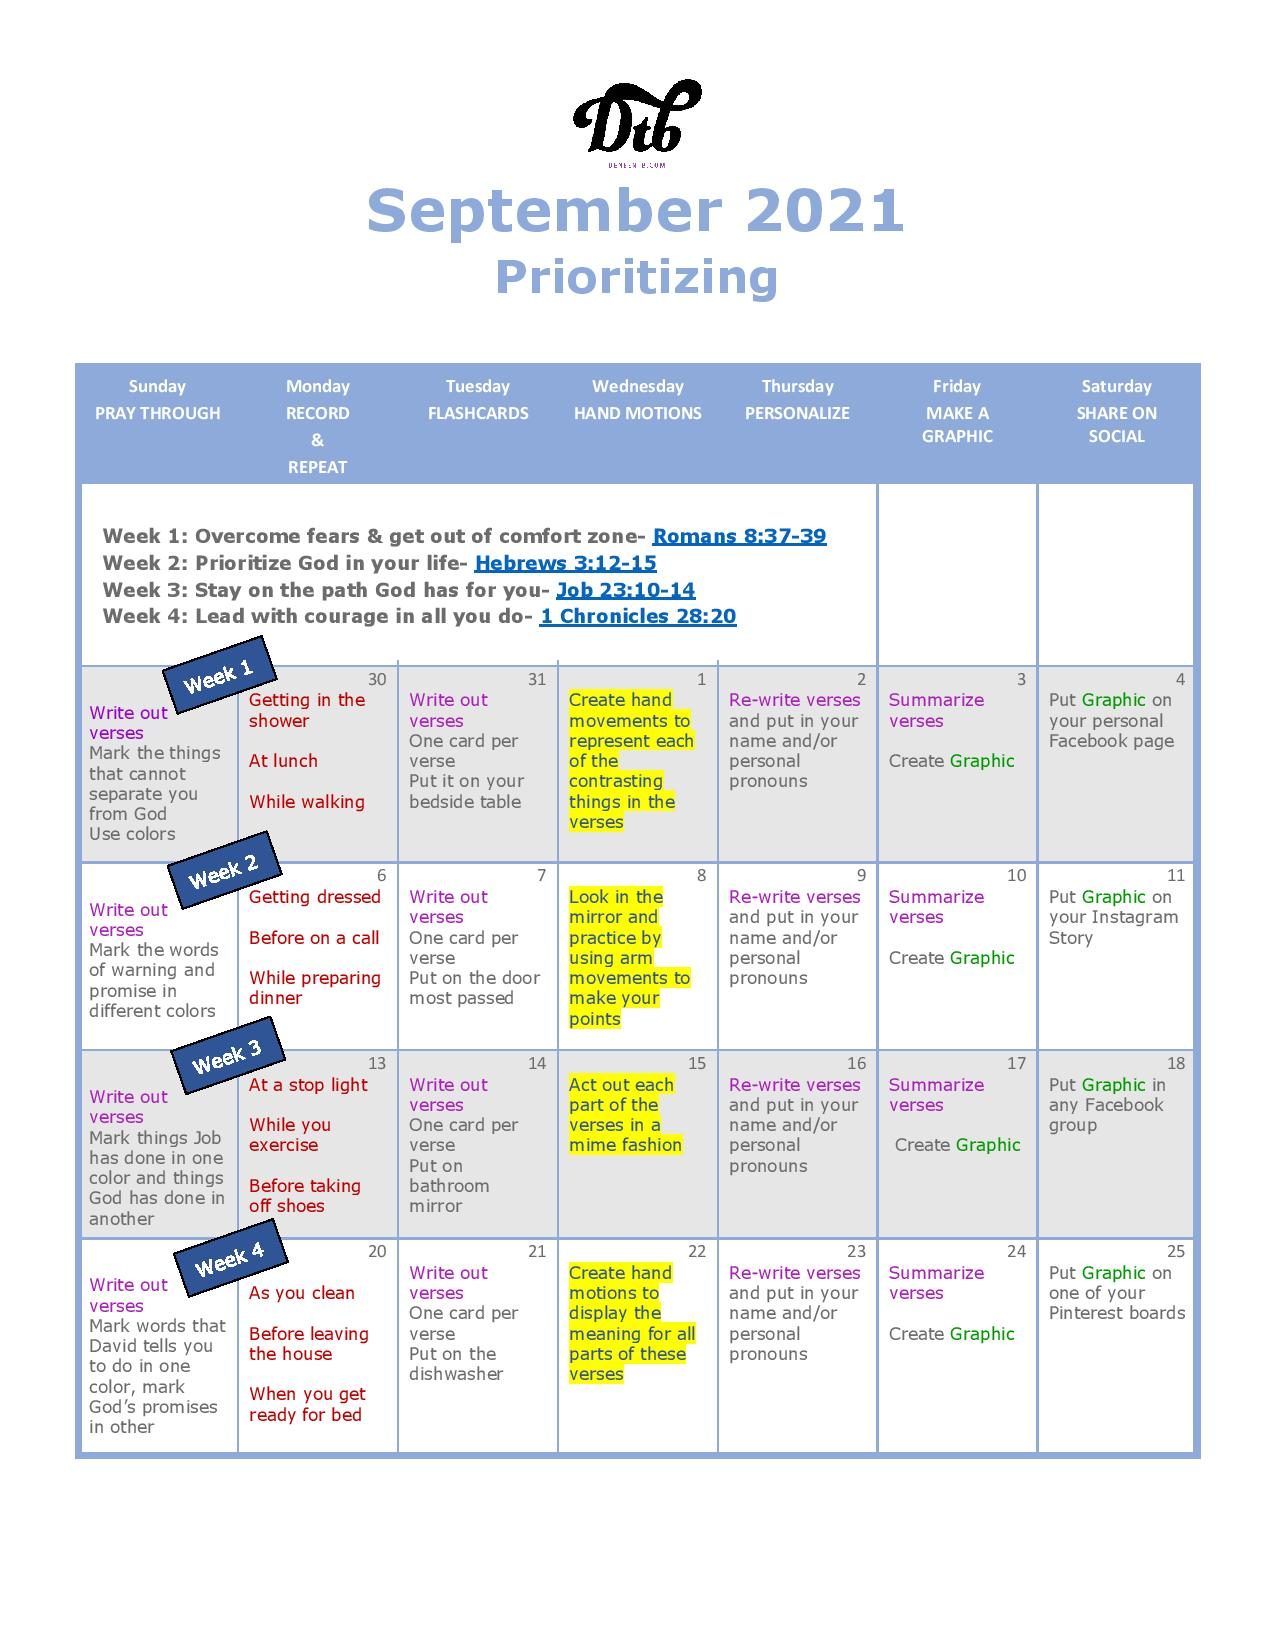 Picture of the September Scripture calendar